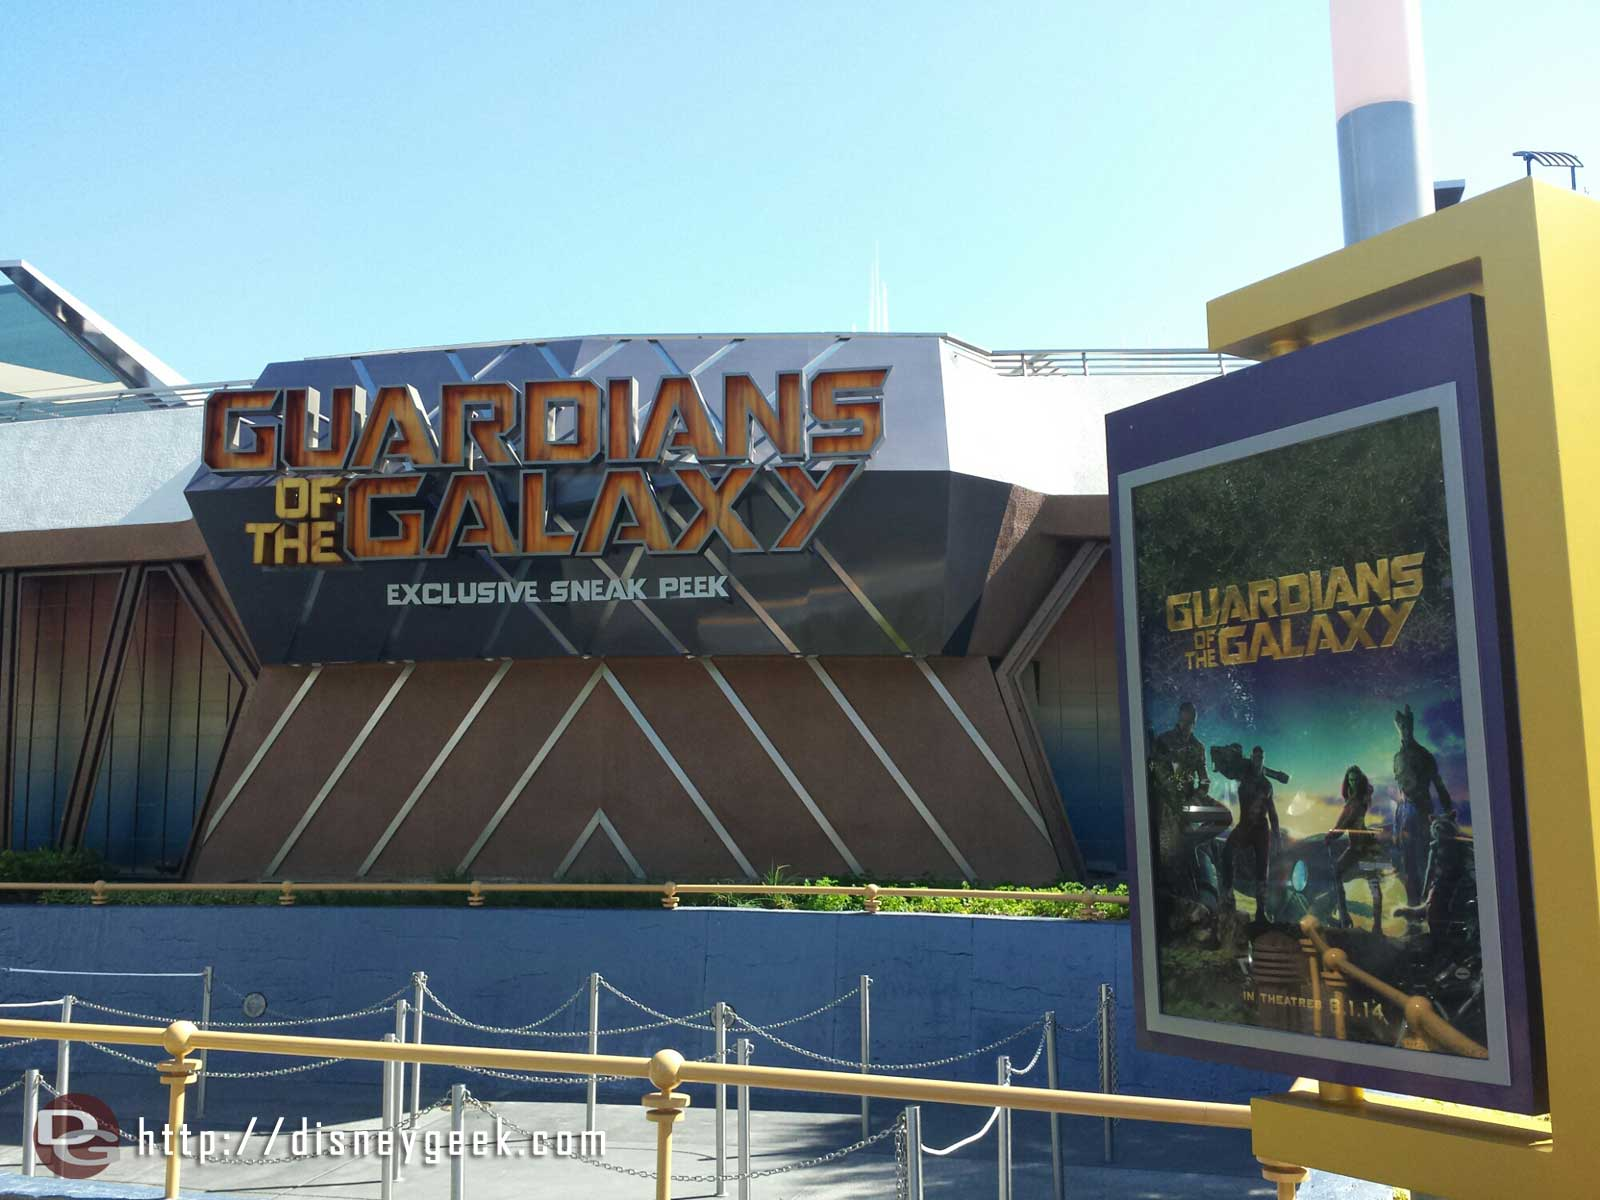 Guardians of the Galaxy signage and posters at the Magic Eye Theater in Tomorrowland